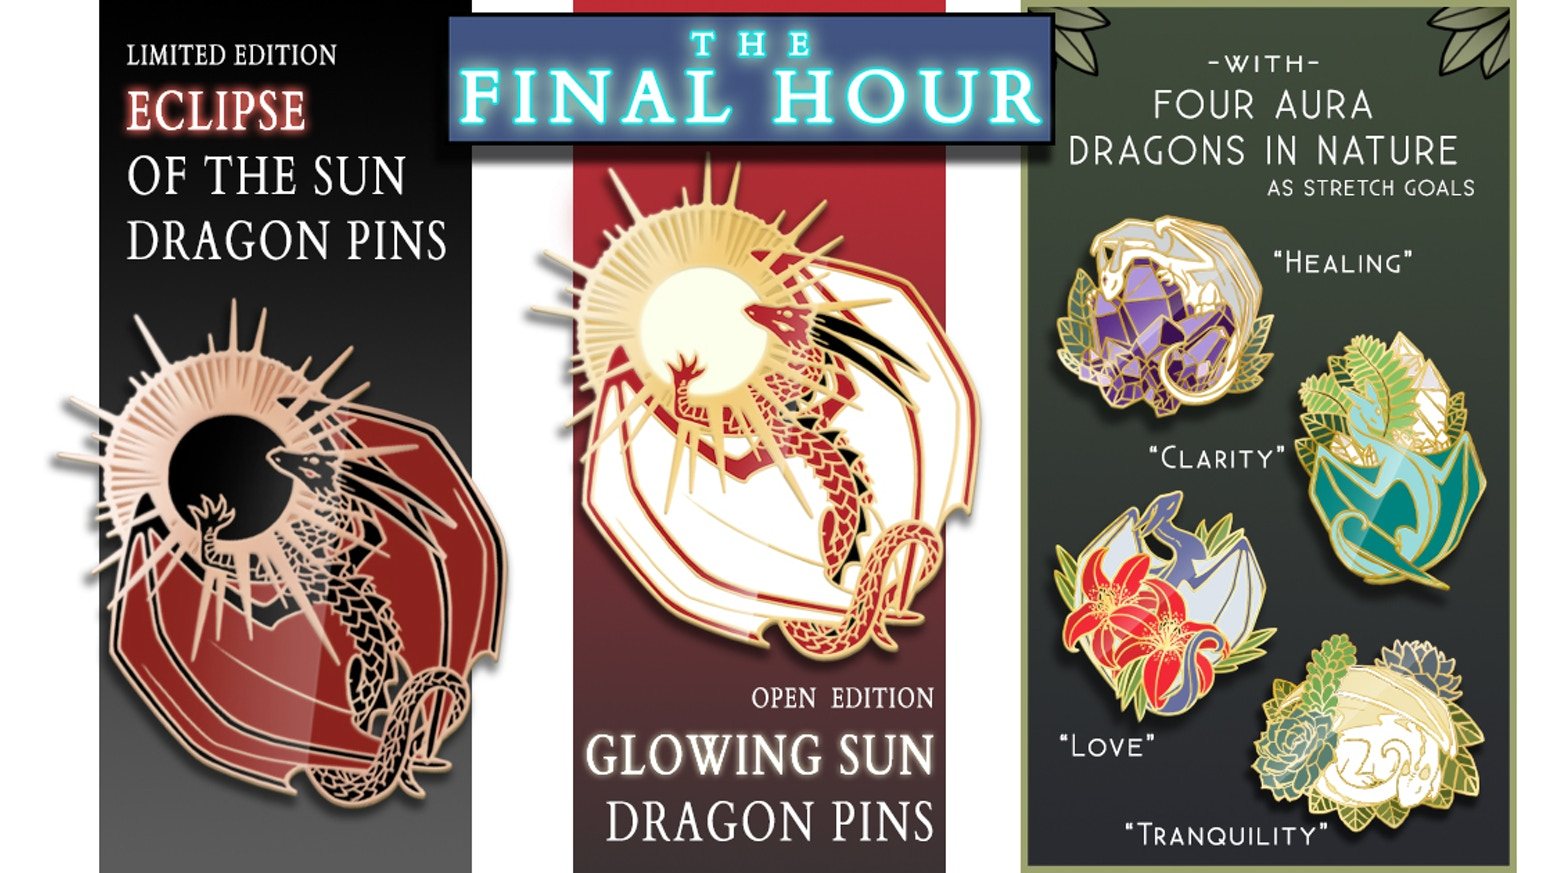 Make 100 Limited Edition Eclipse of the Sun Dragon Enamel Pins with Aura Dragons in Nature